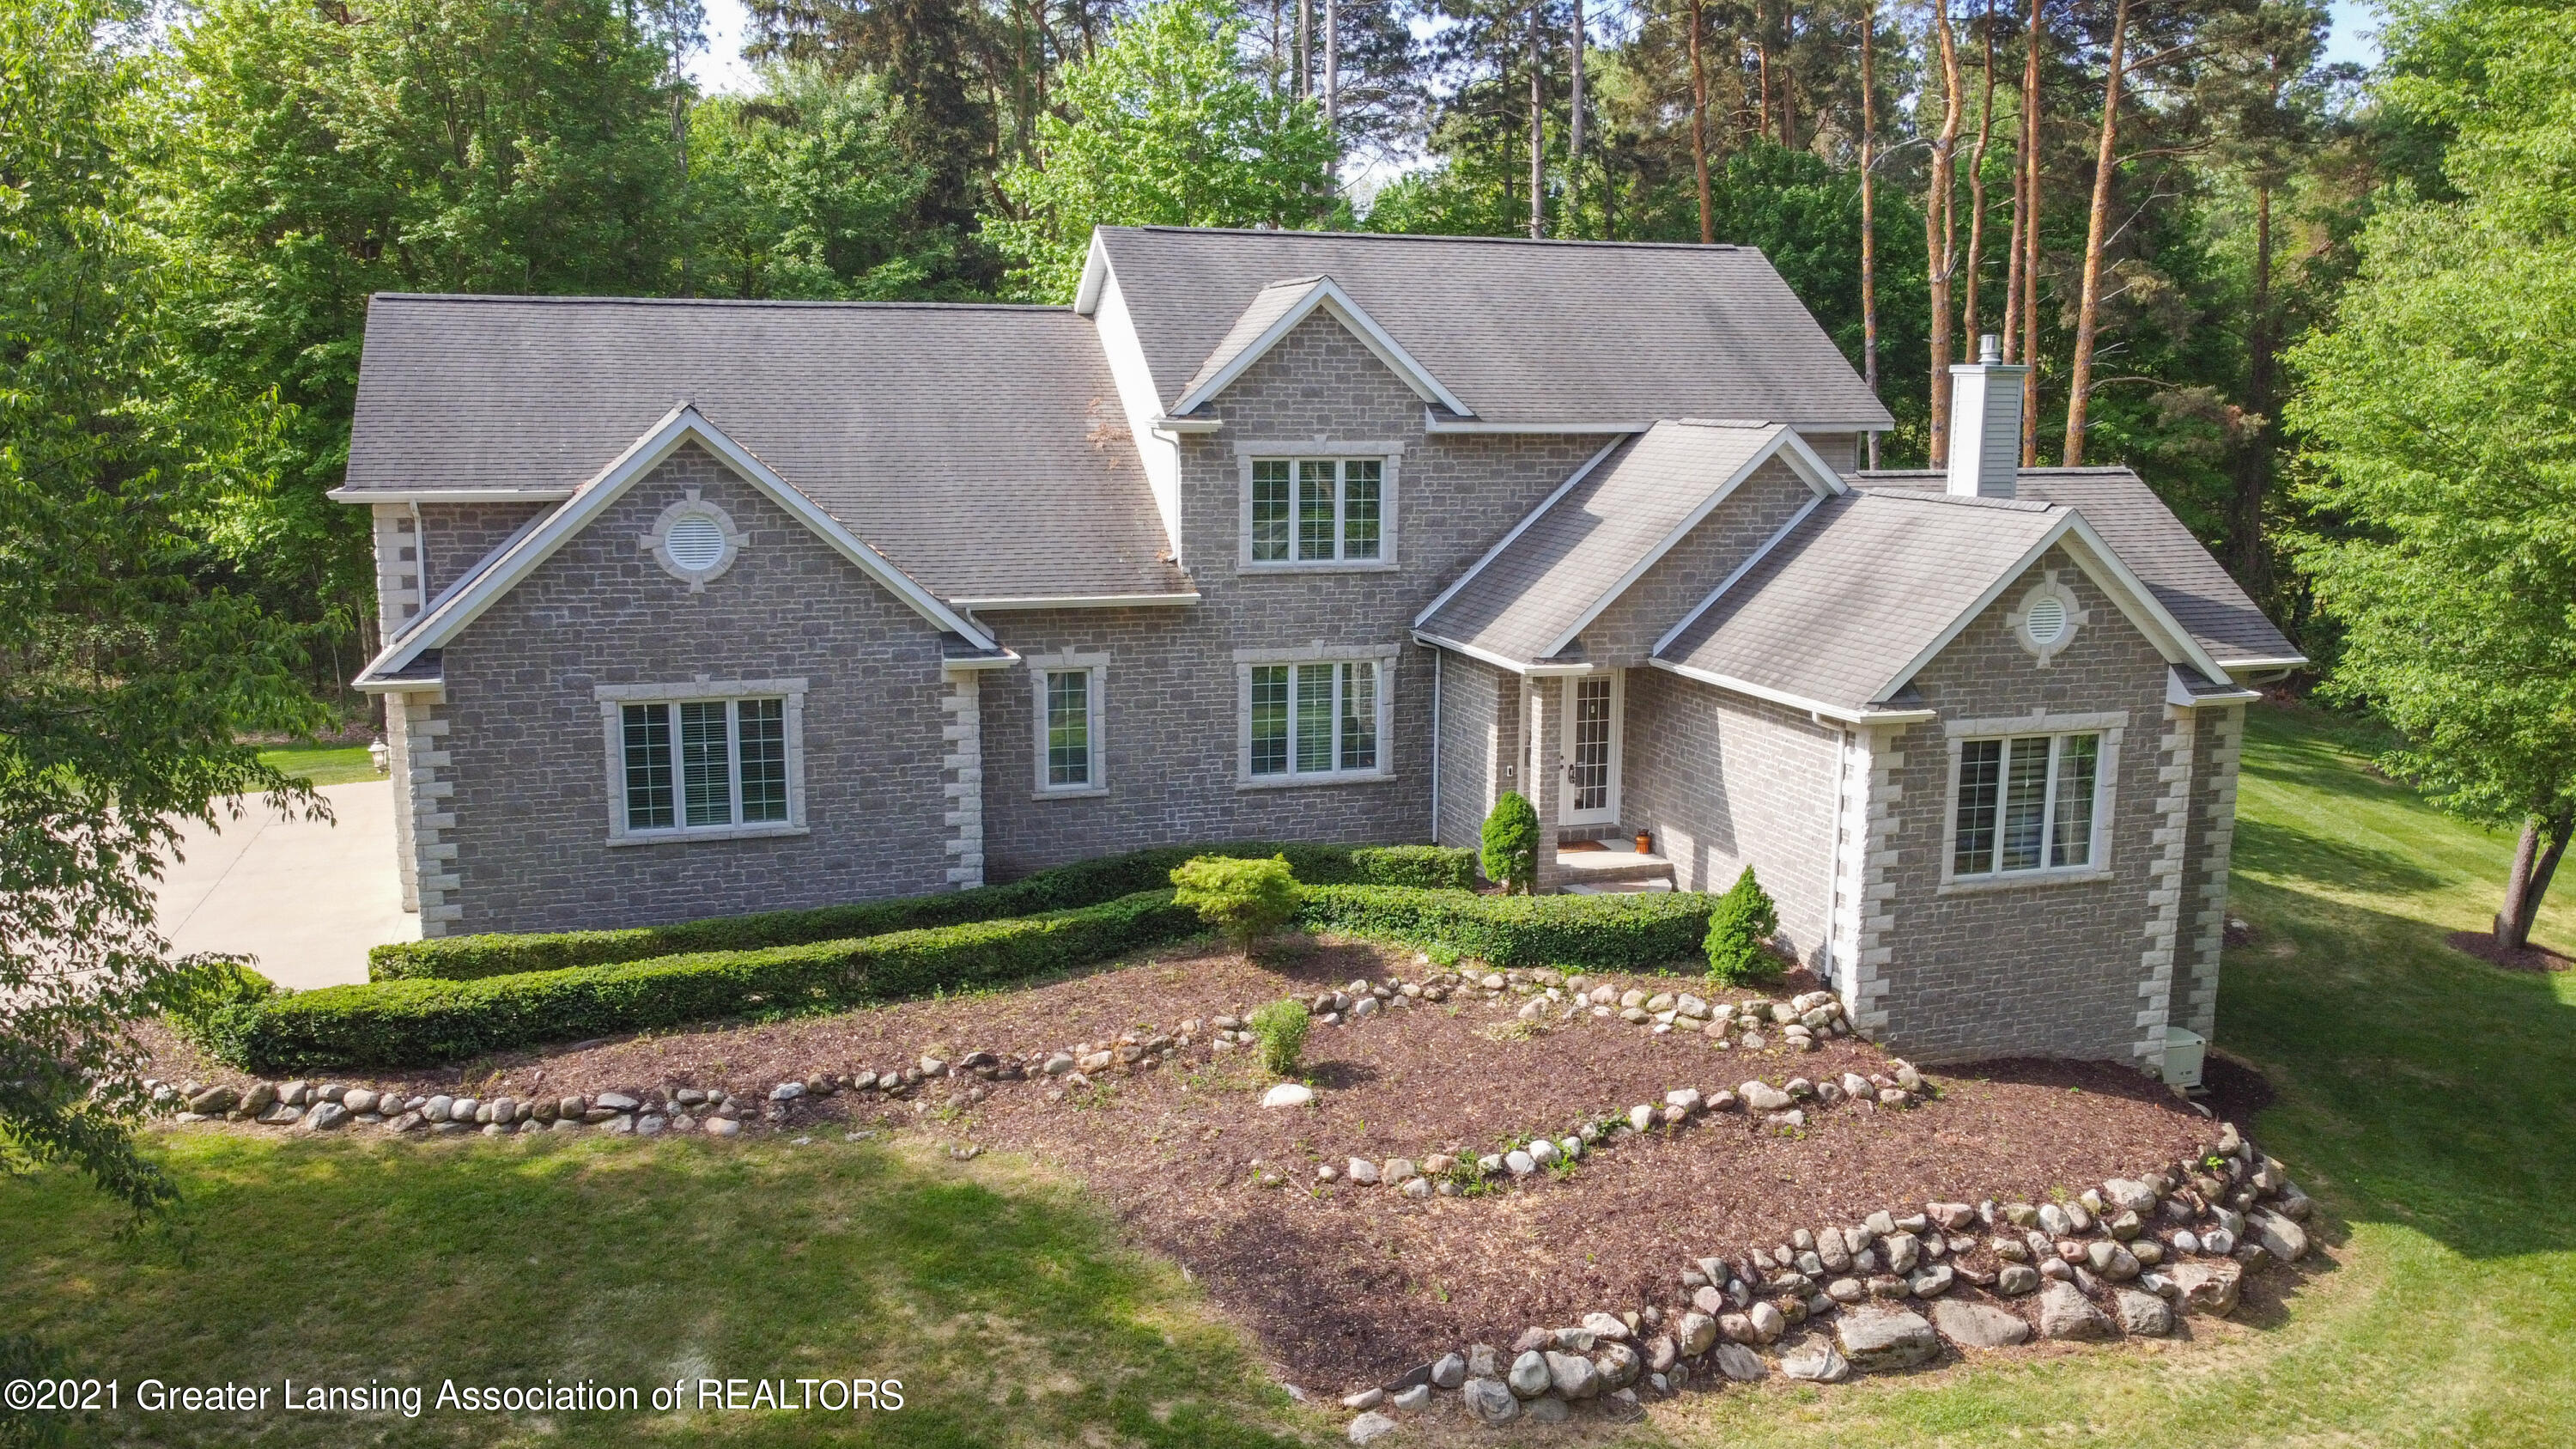 1540 Osprey Ave - Front View - 1